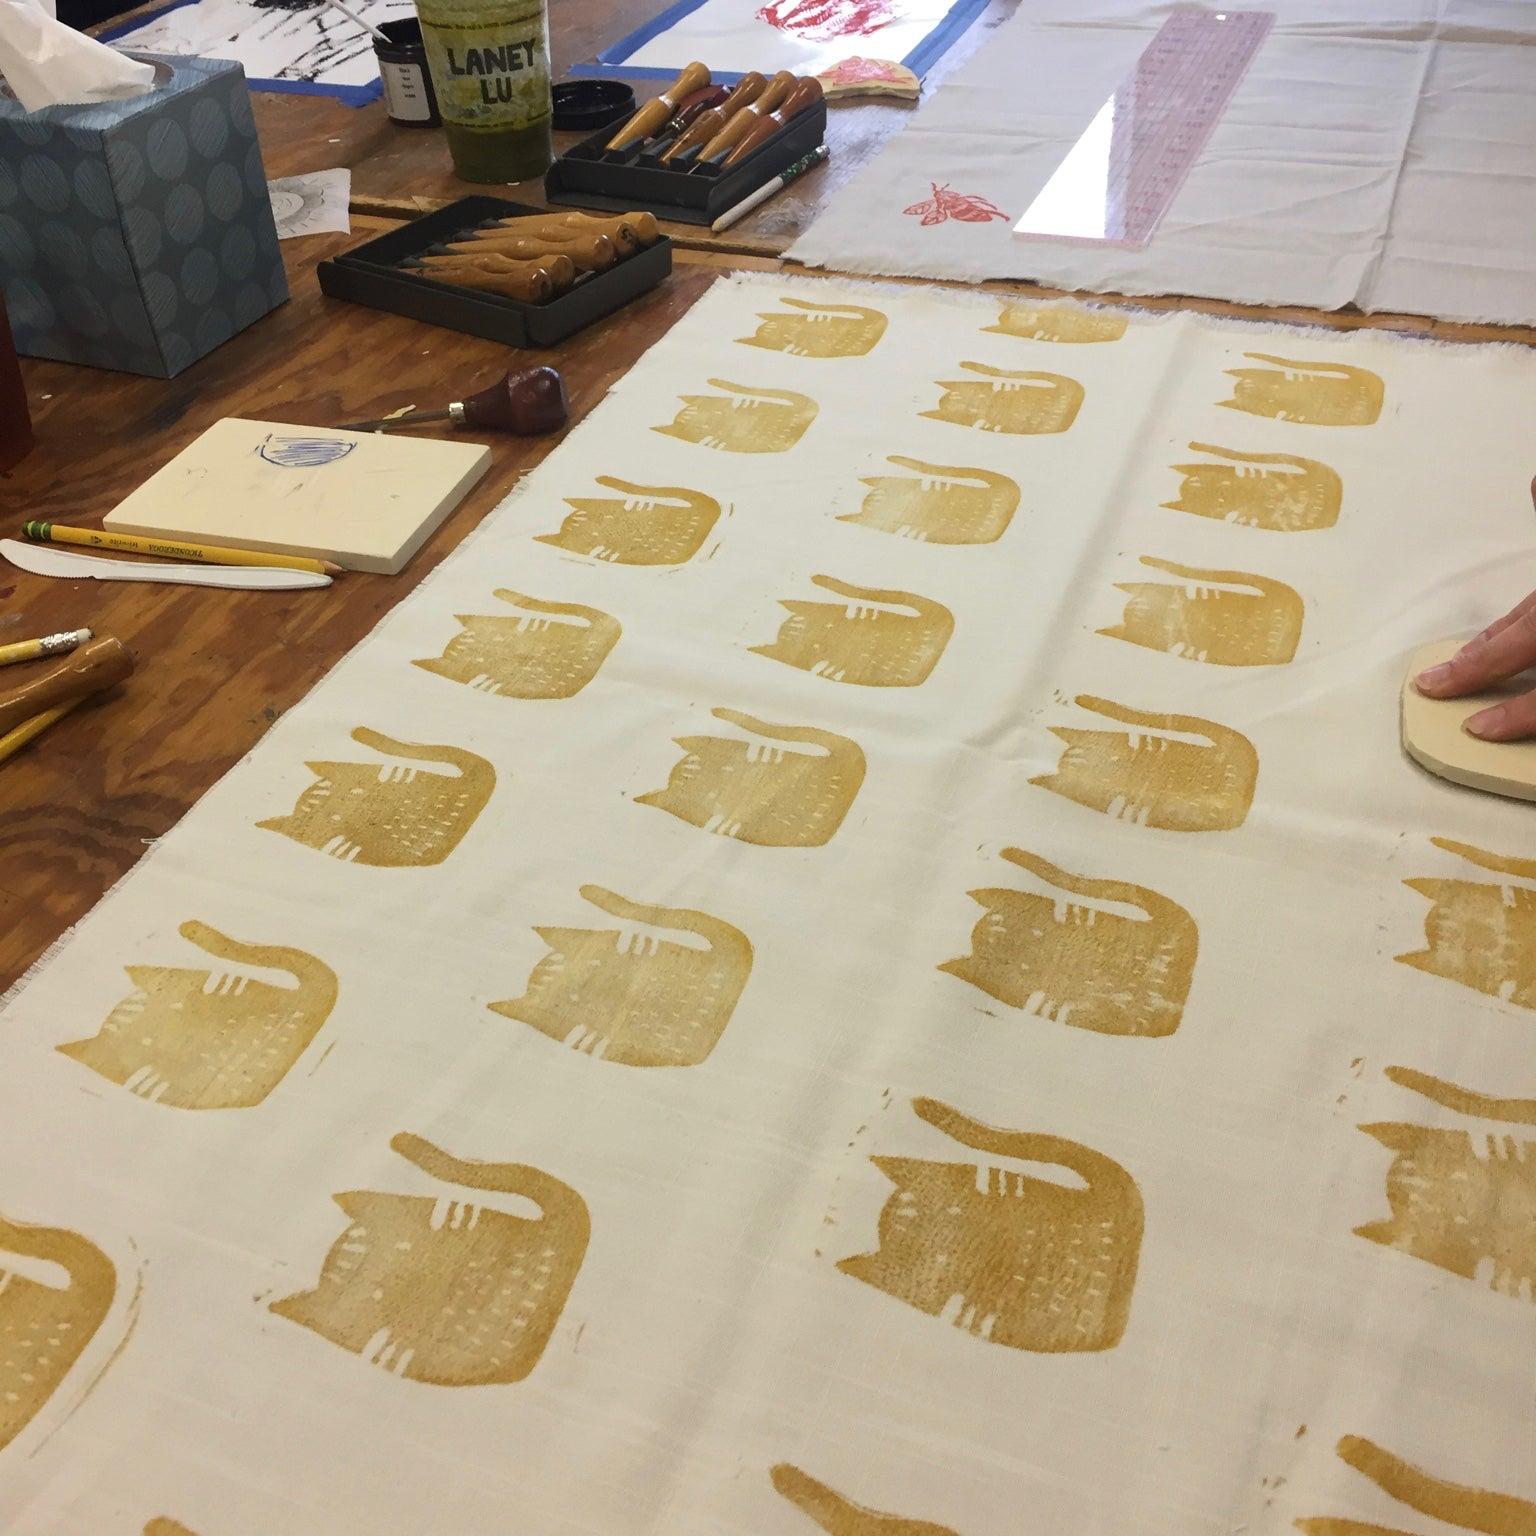 Block Printing Fabric with Sarah Koff 08/18